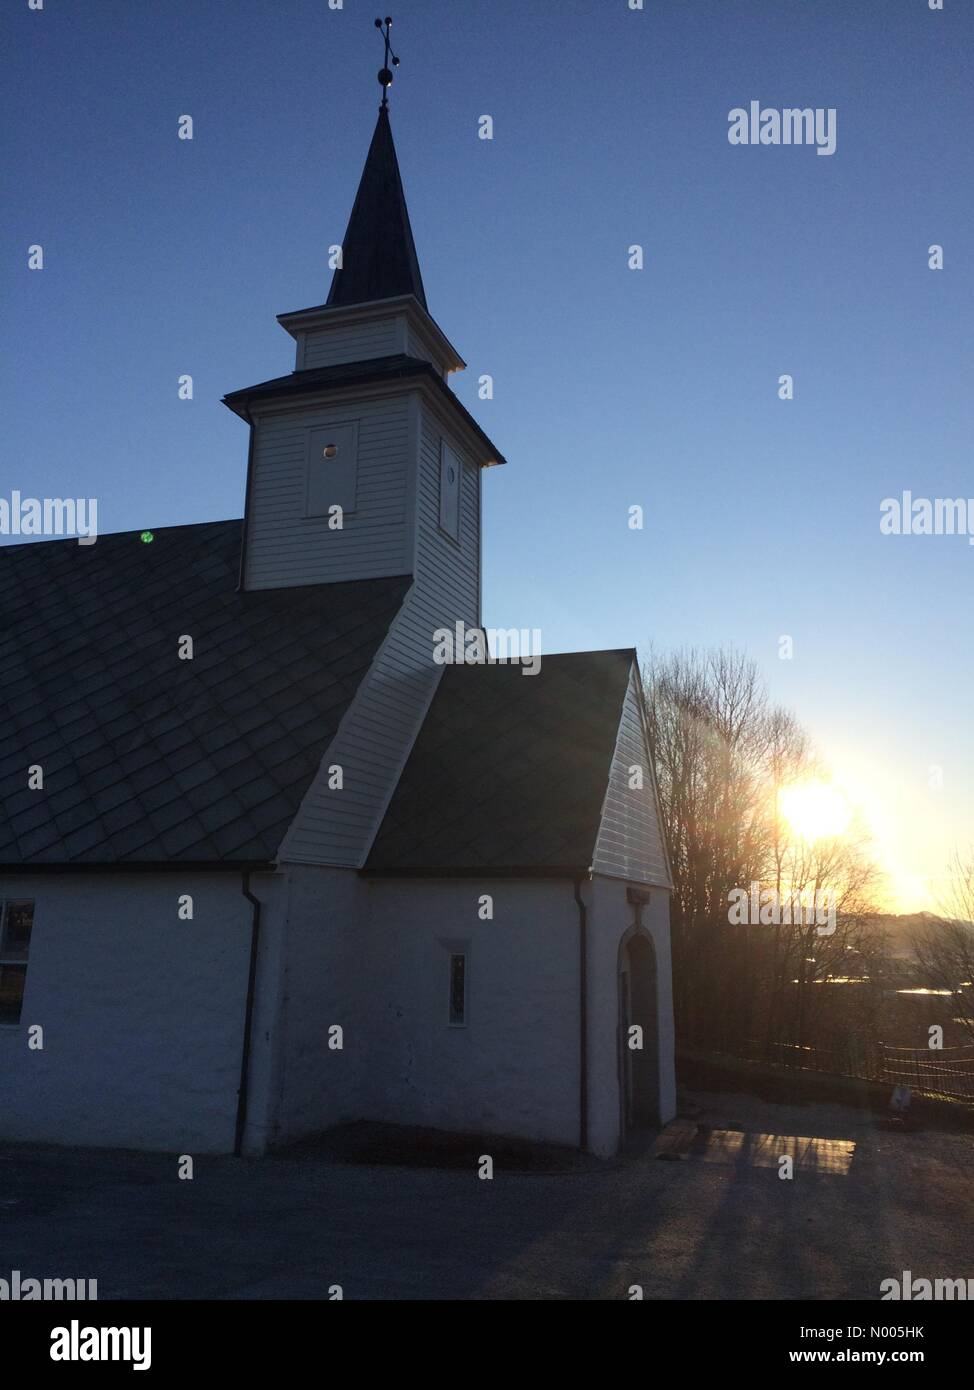 EUweather: Beautiful low sunlight streaking over the old church in Åsane this afternoon, Åsane, Bergen, - Stock Image